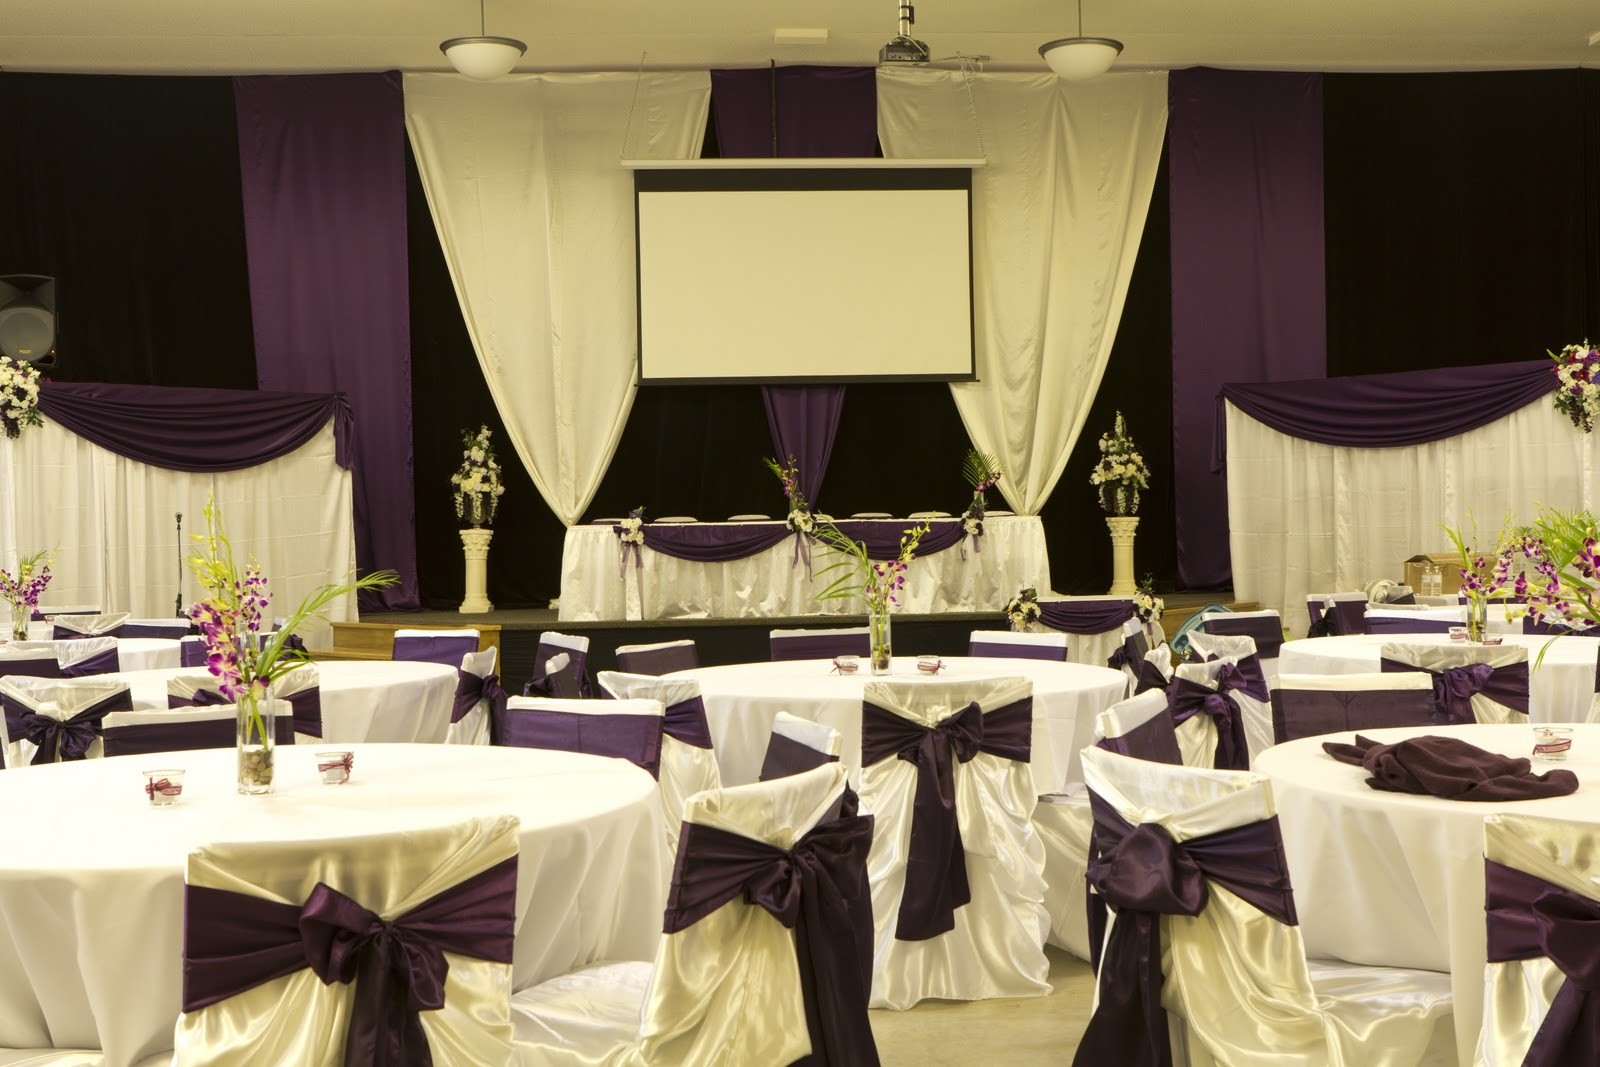 Wedding Decoration Wedding Reception Decor Wedding Decor